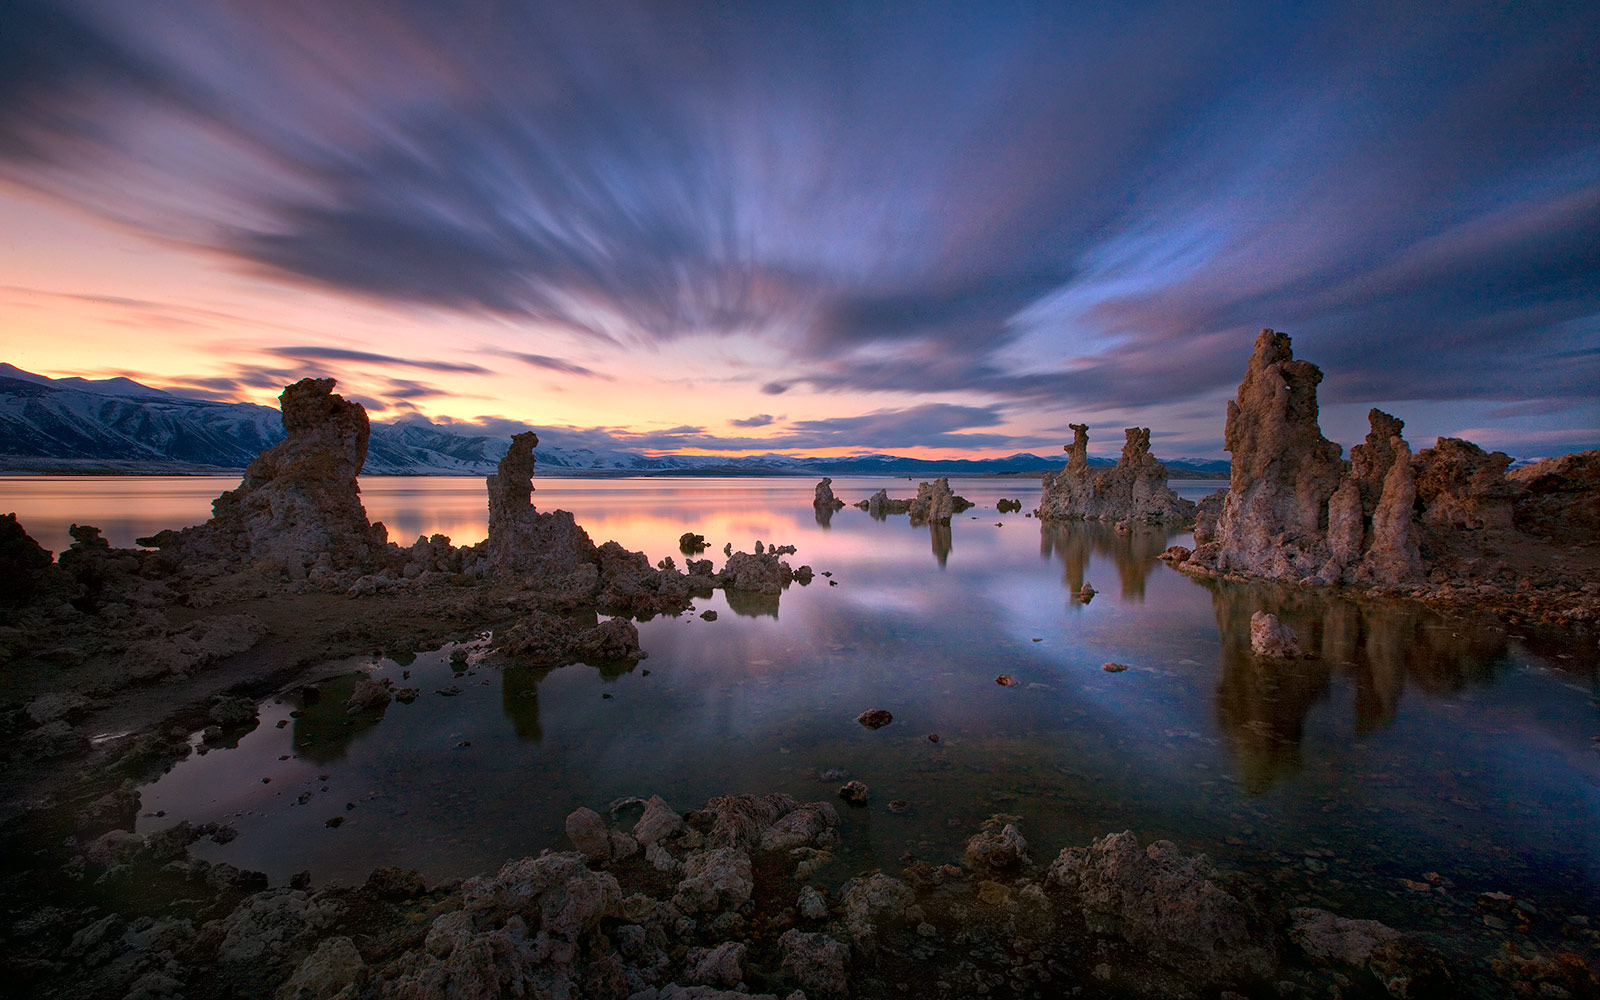 California's Mono Lake photographed at twilight. A long exposure creates the streaks of clouds and smooth water effect you see...